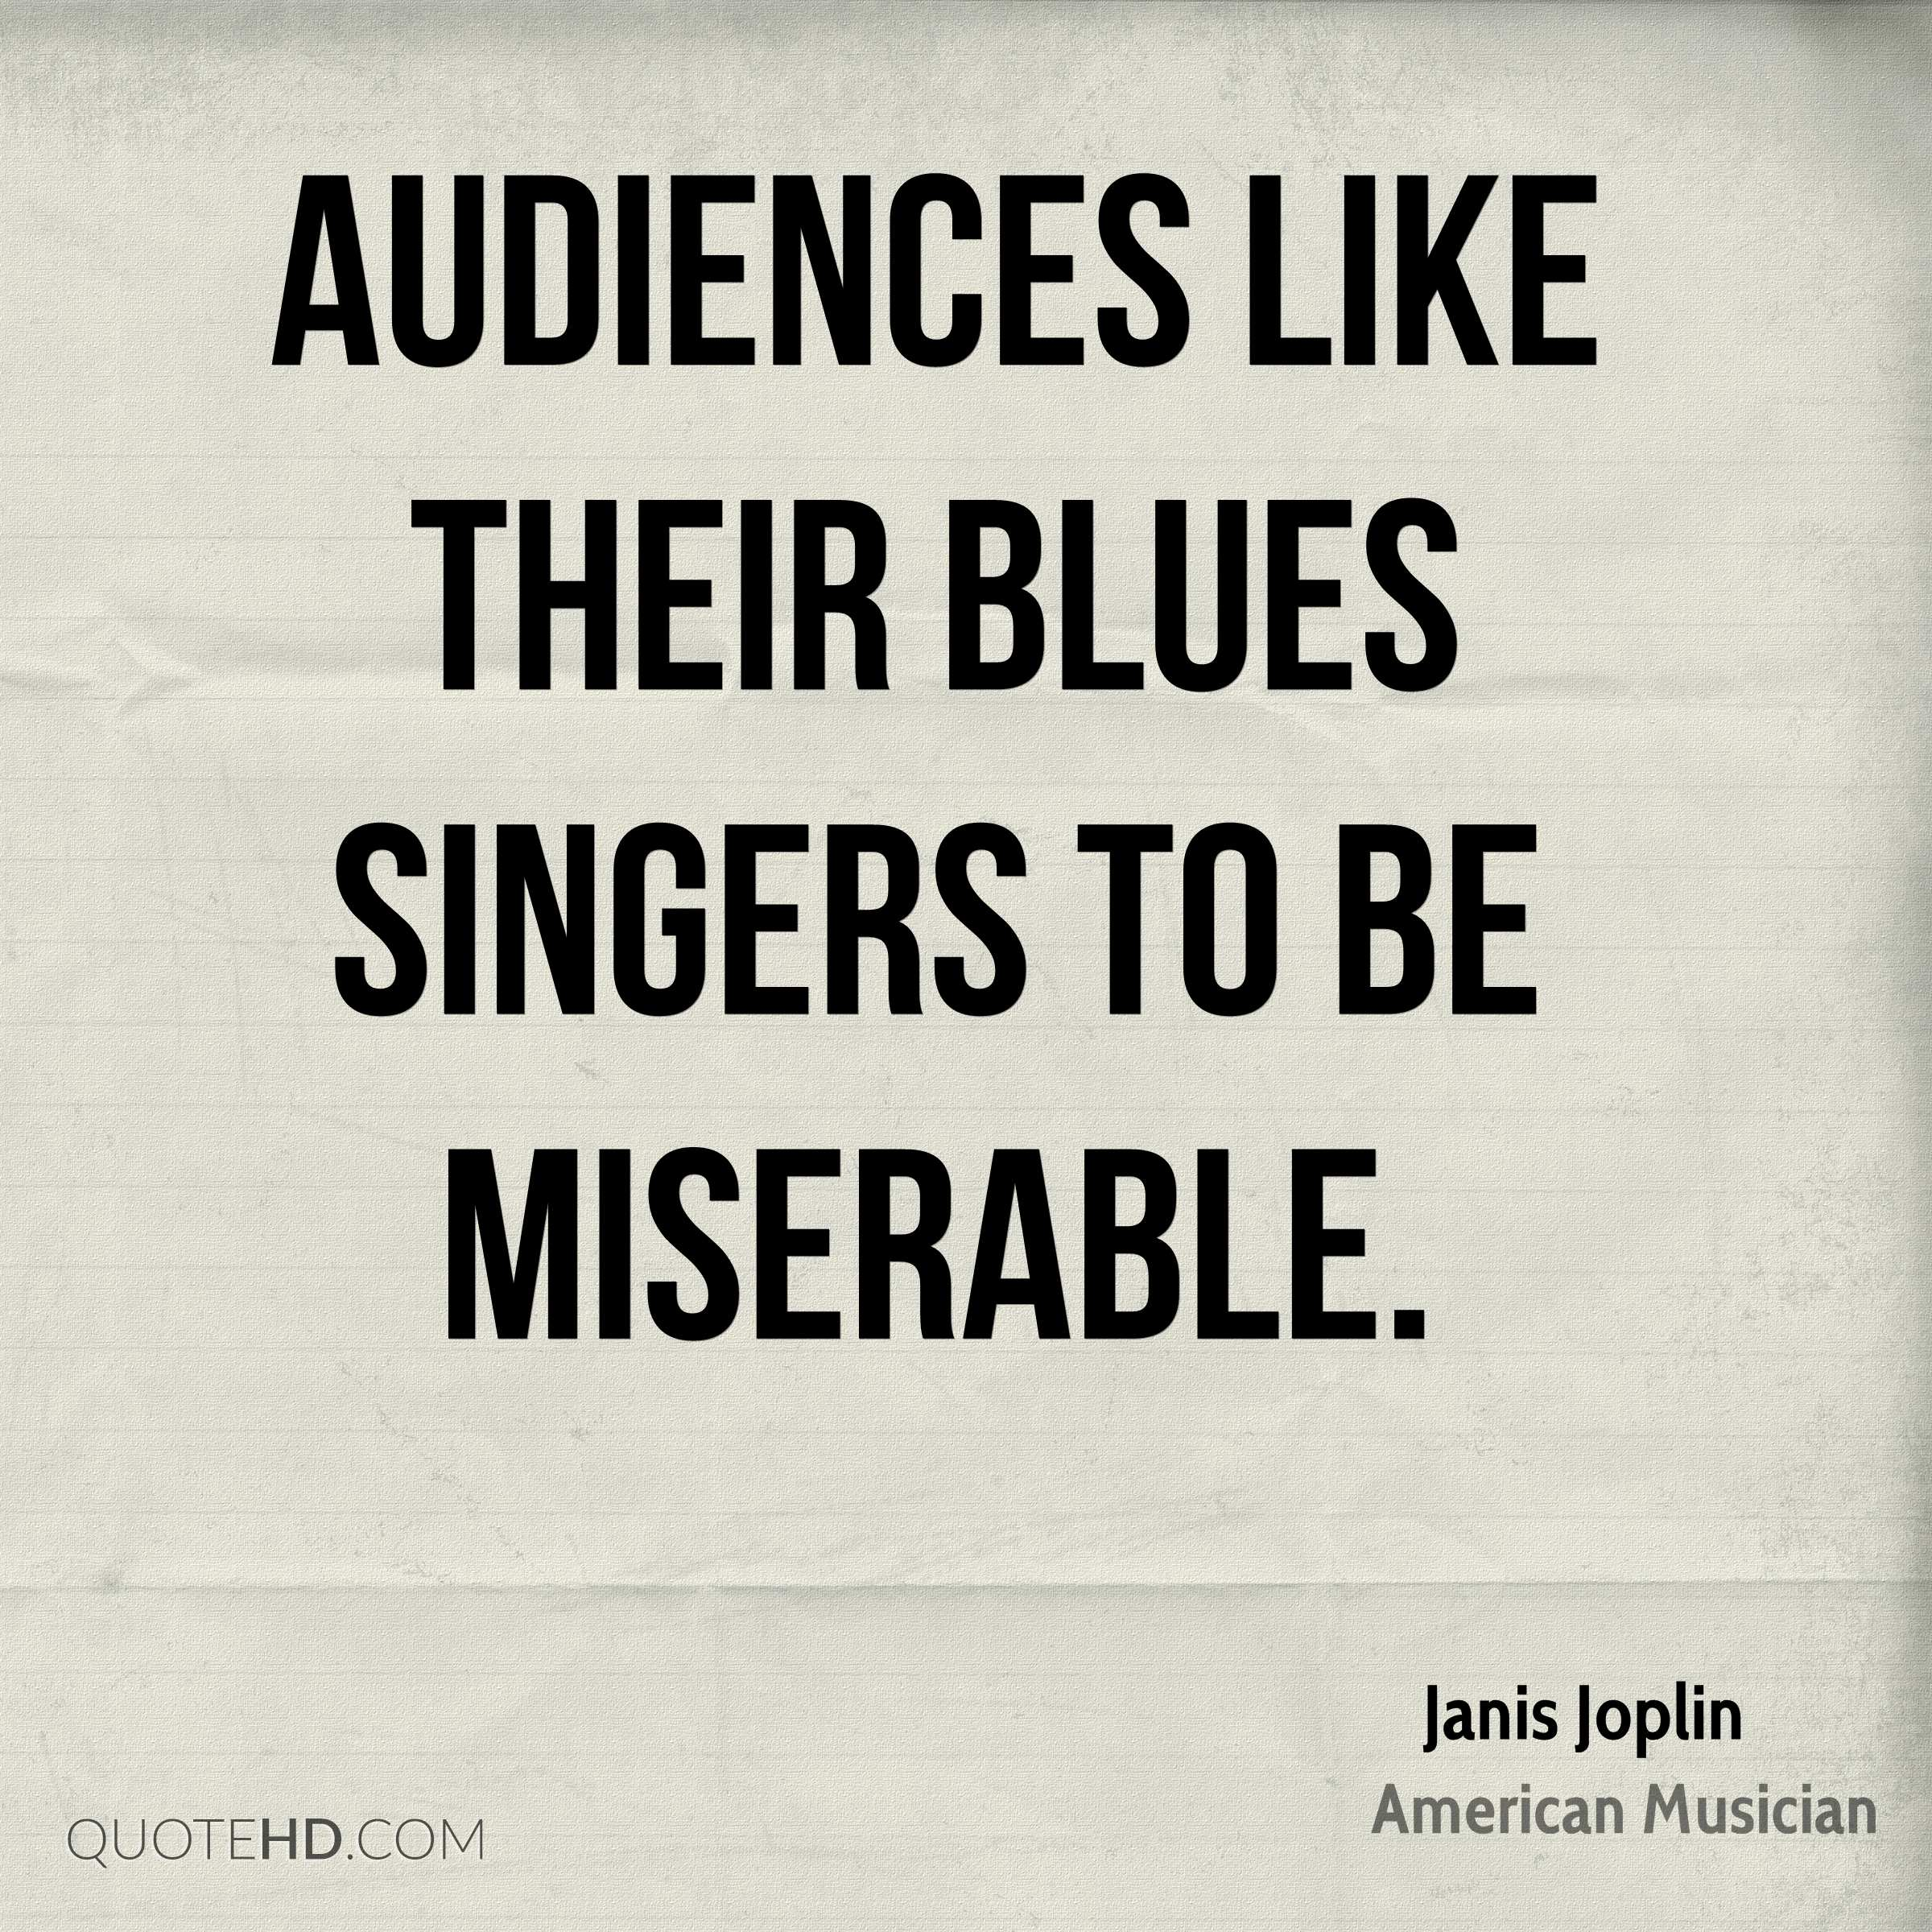 Audiences like their blues singers to be miserable.